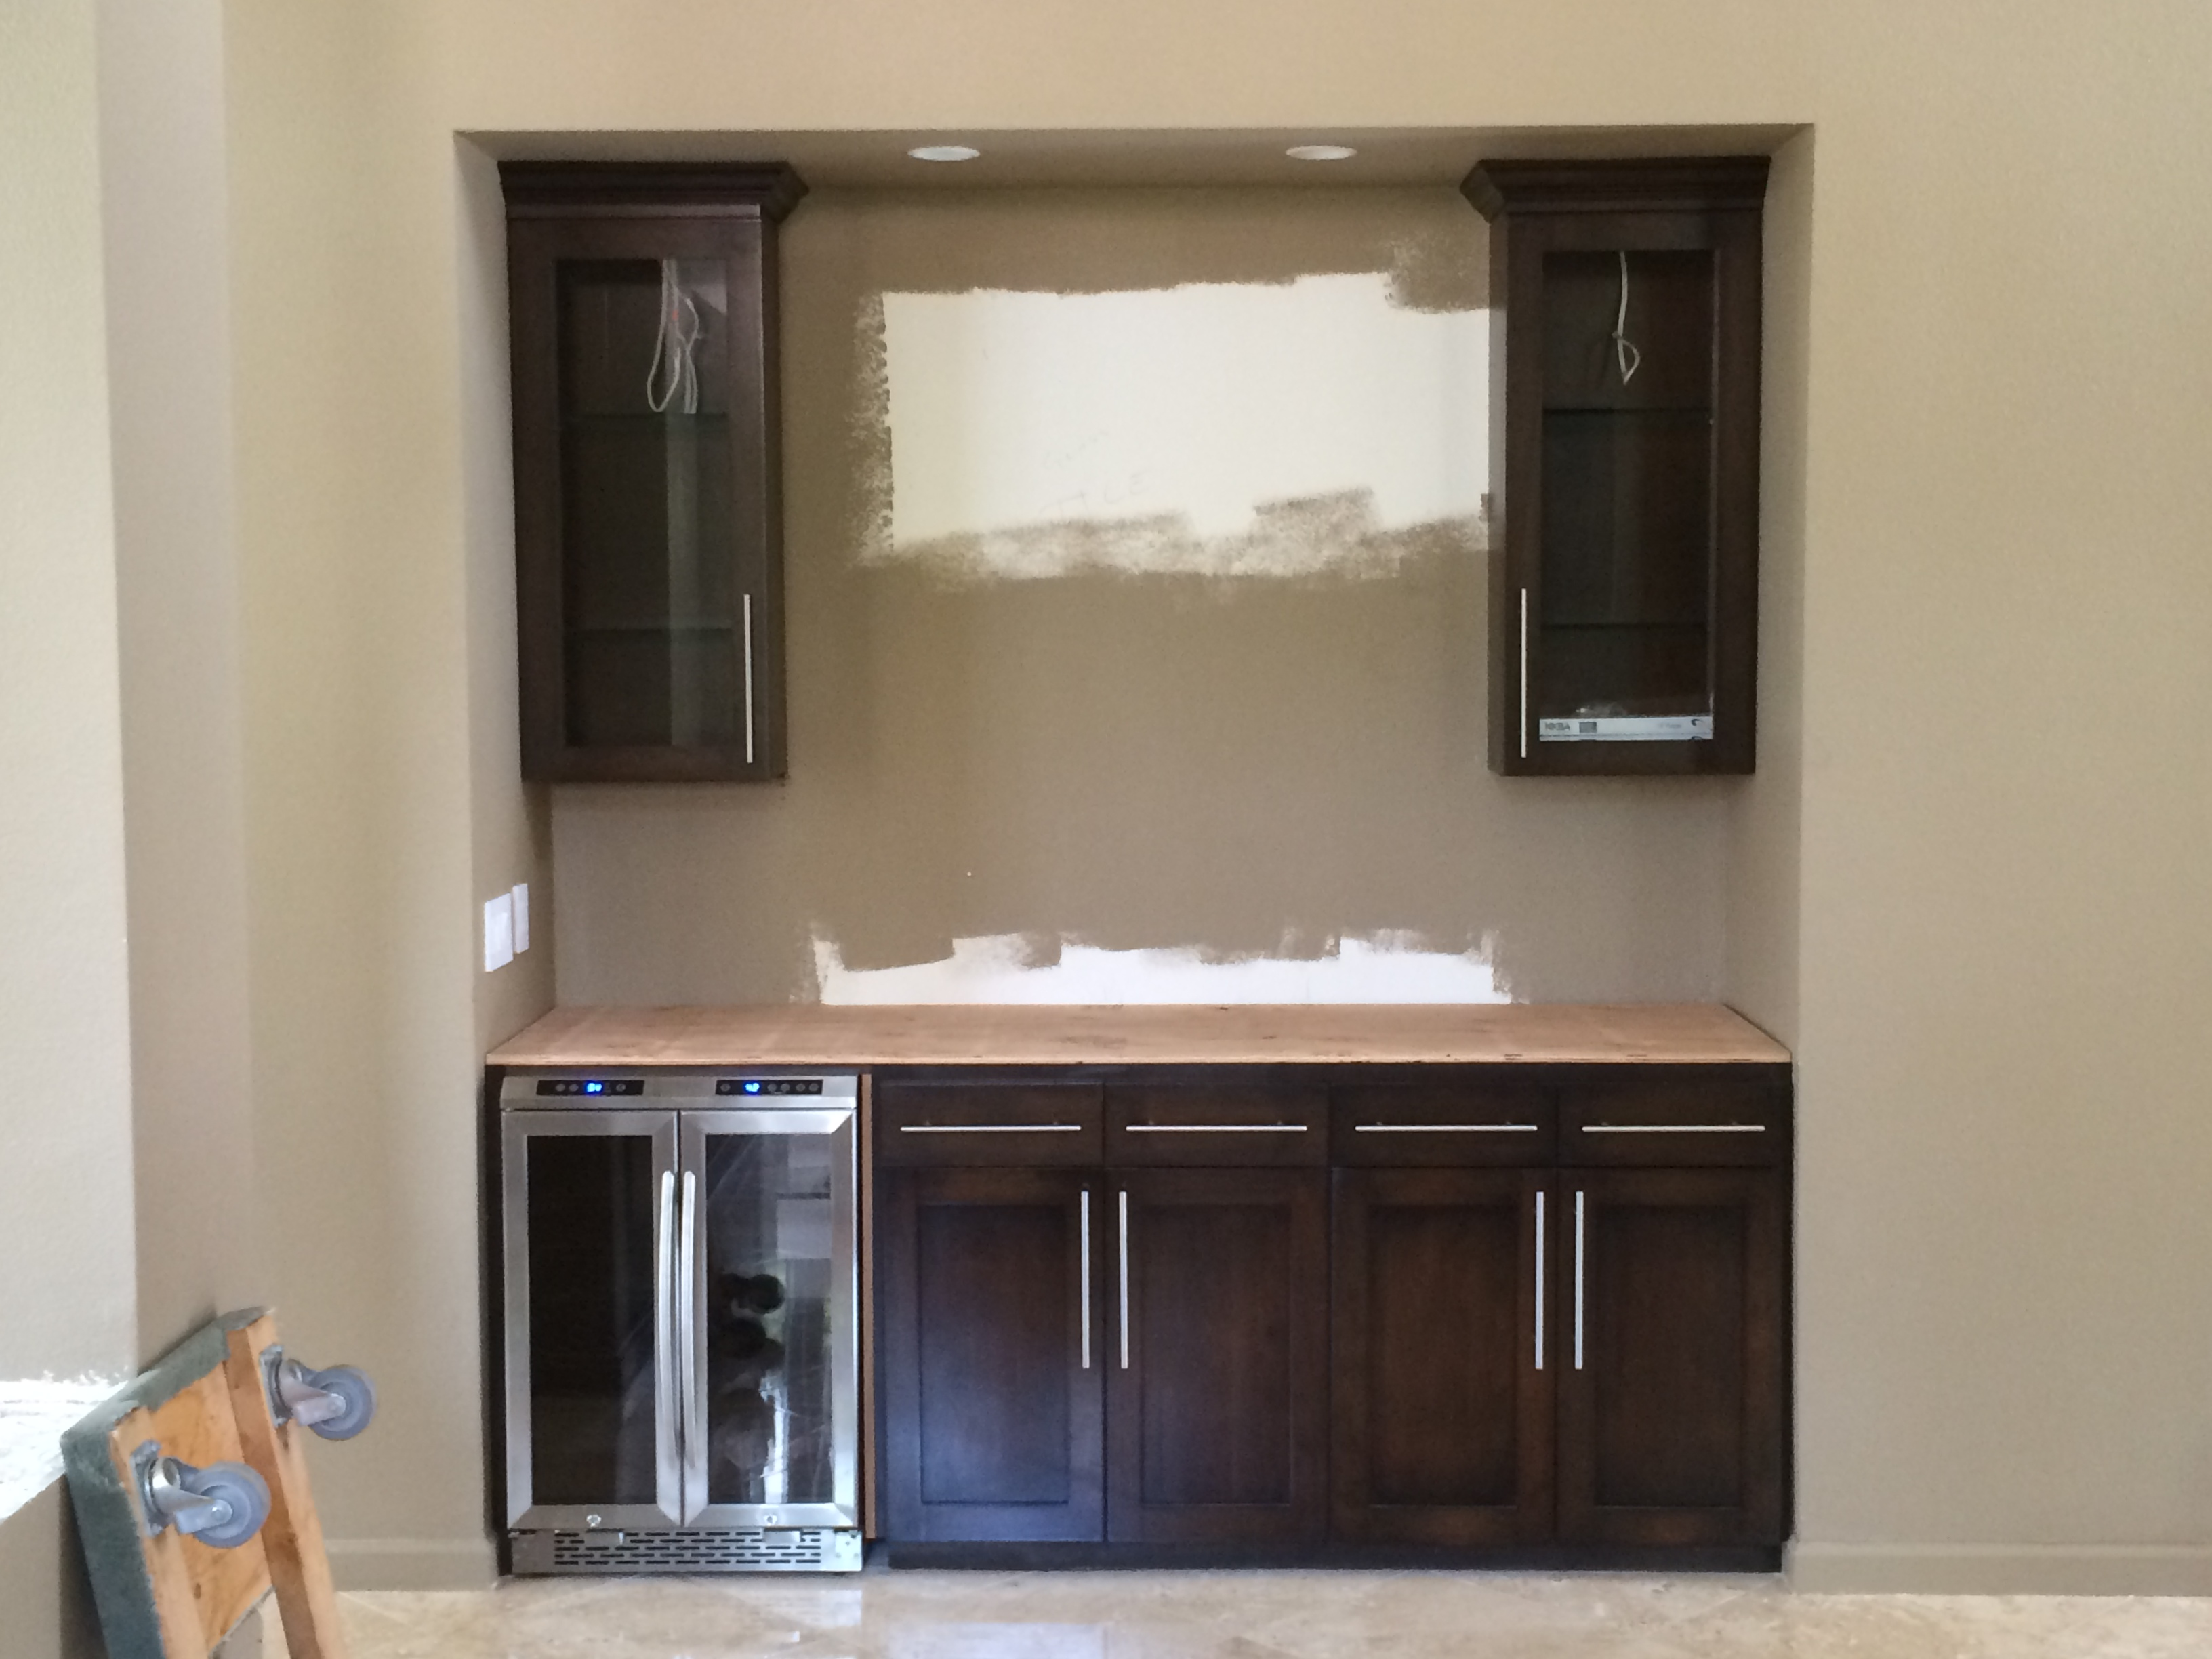 The Amount Of Time And Care Spent On Each Set Of Our Custom Cabinets Will  Make For A Better Finished Product. There Is No Such Thing As Too Much  Detail.